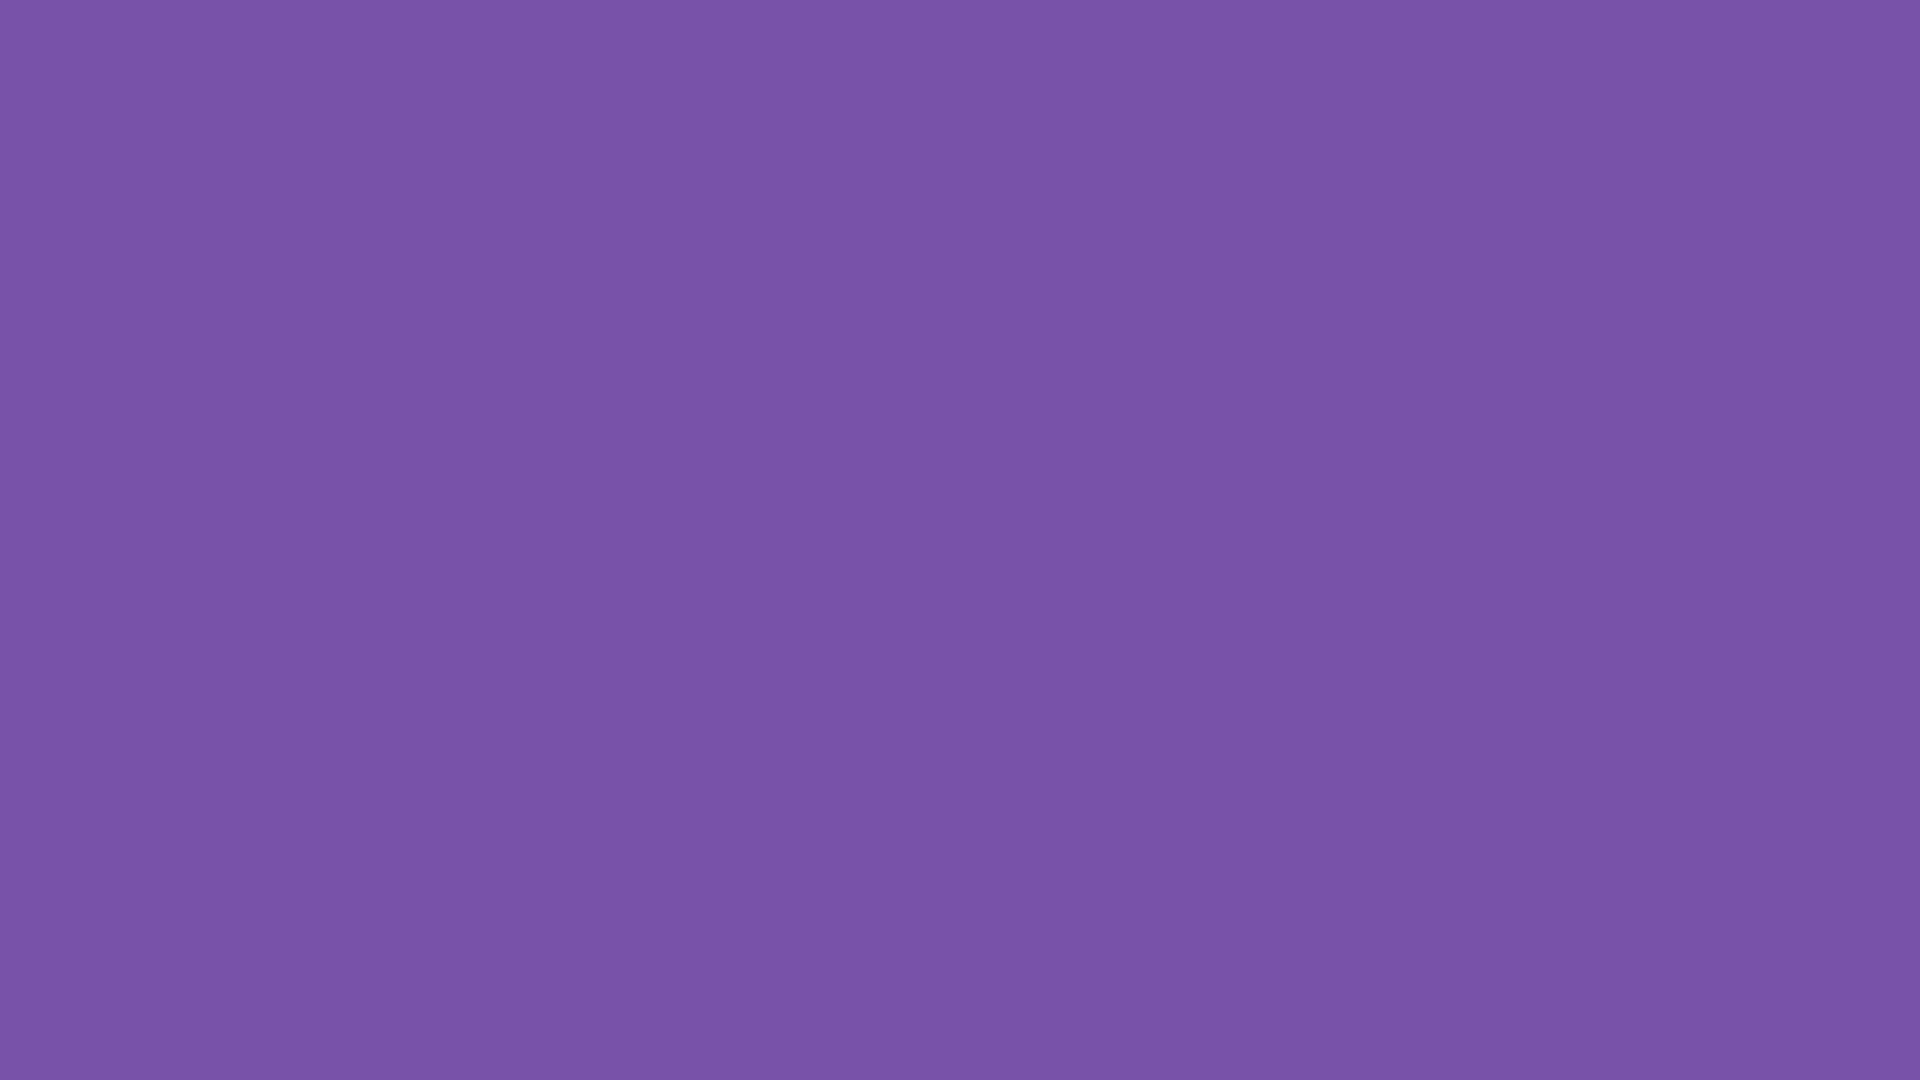 1920x1080 Royal Purple Solid Color Background